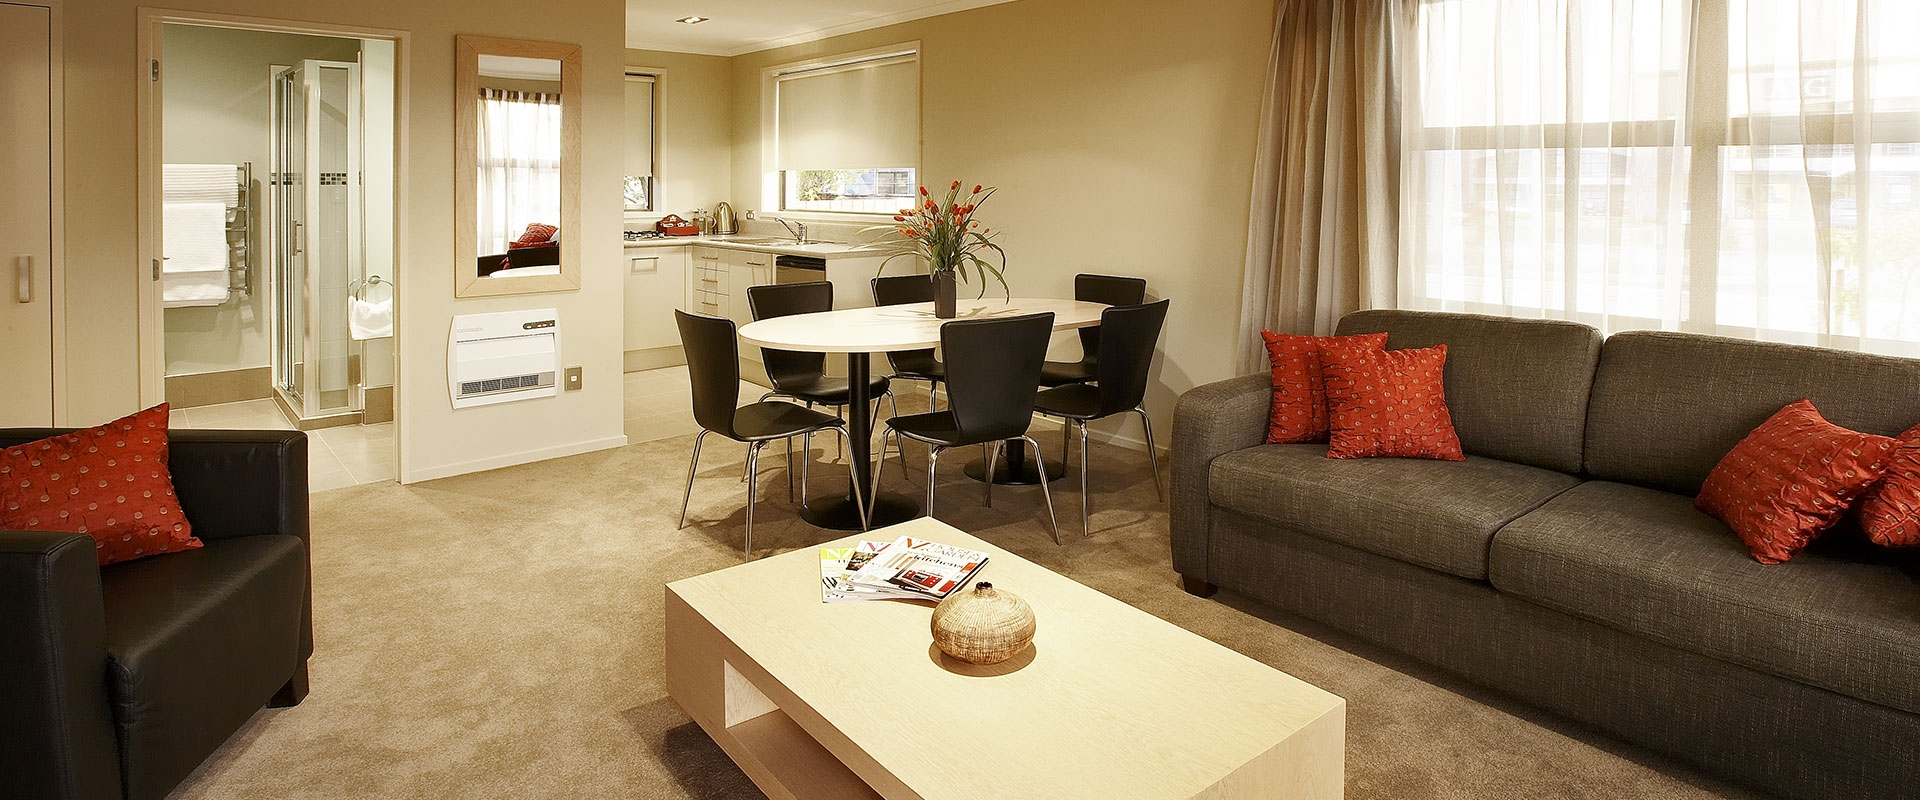 fully furnished modern accommodation in Christchurch